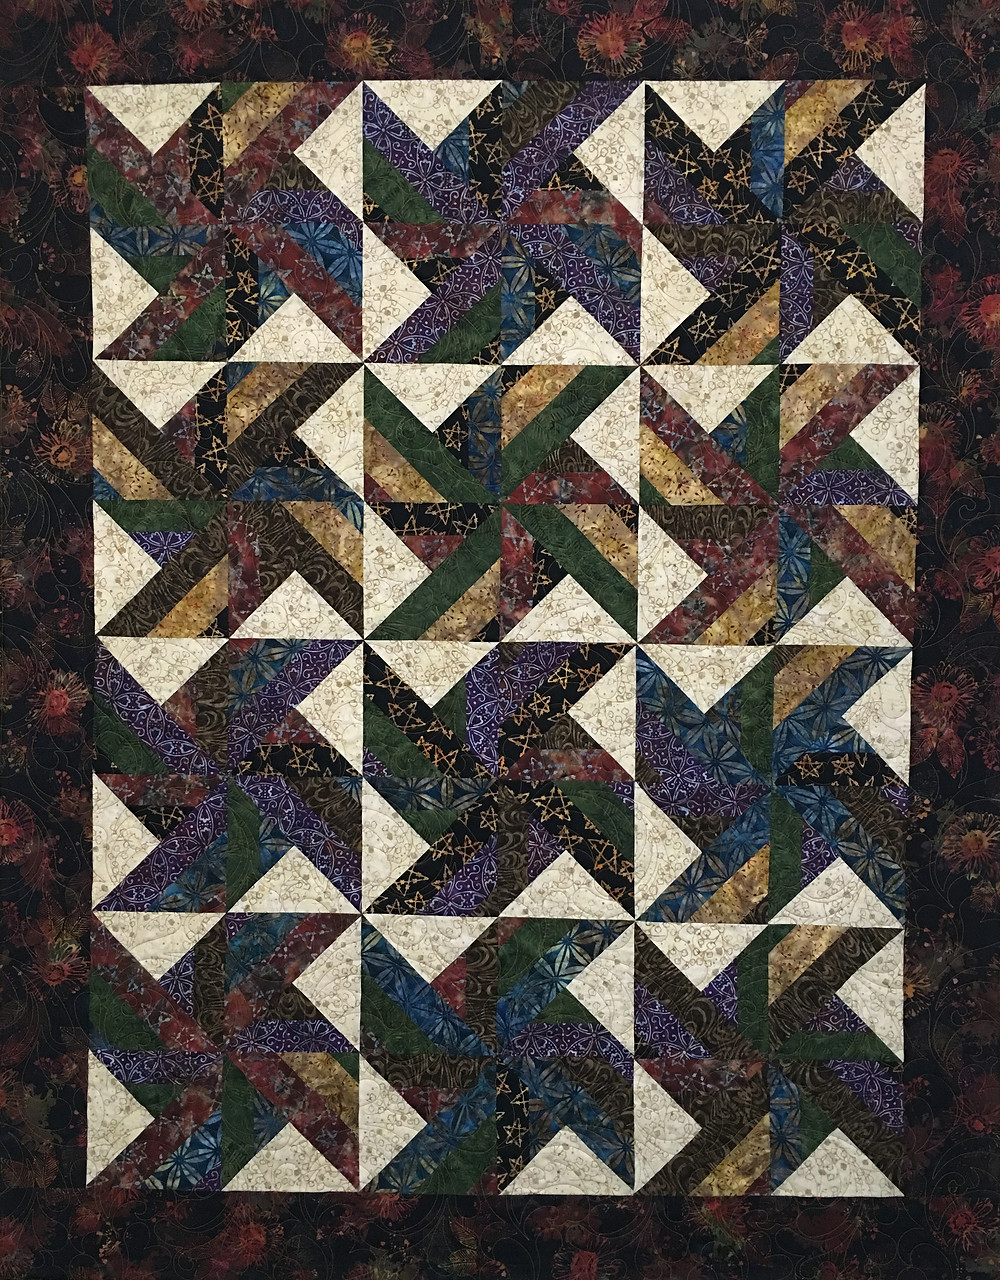 Batiks Blocks quilt by Terry Manley